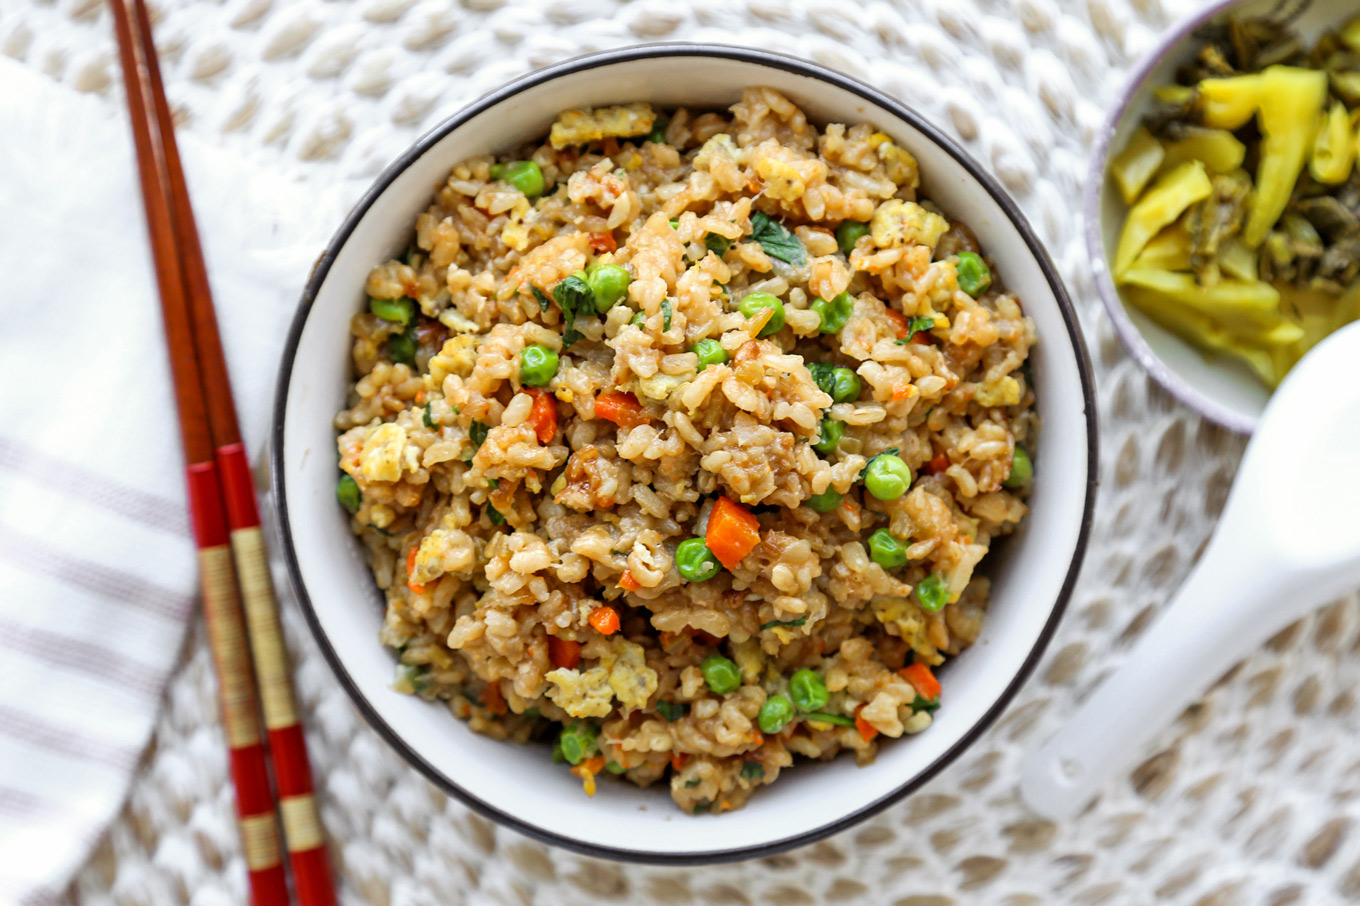 Healthy Vegetable Fried Rice (Brown Rice)